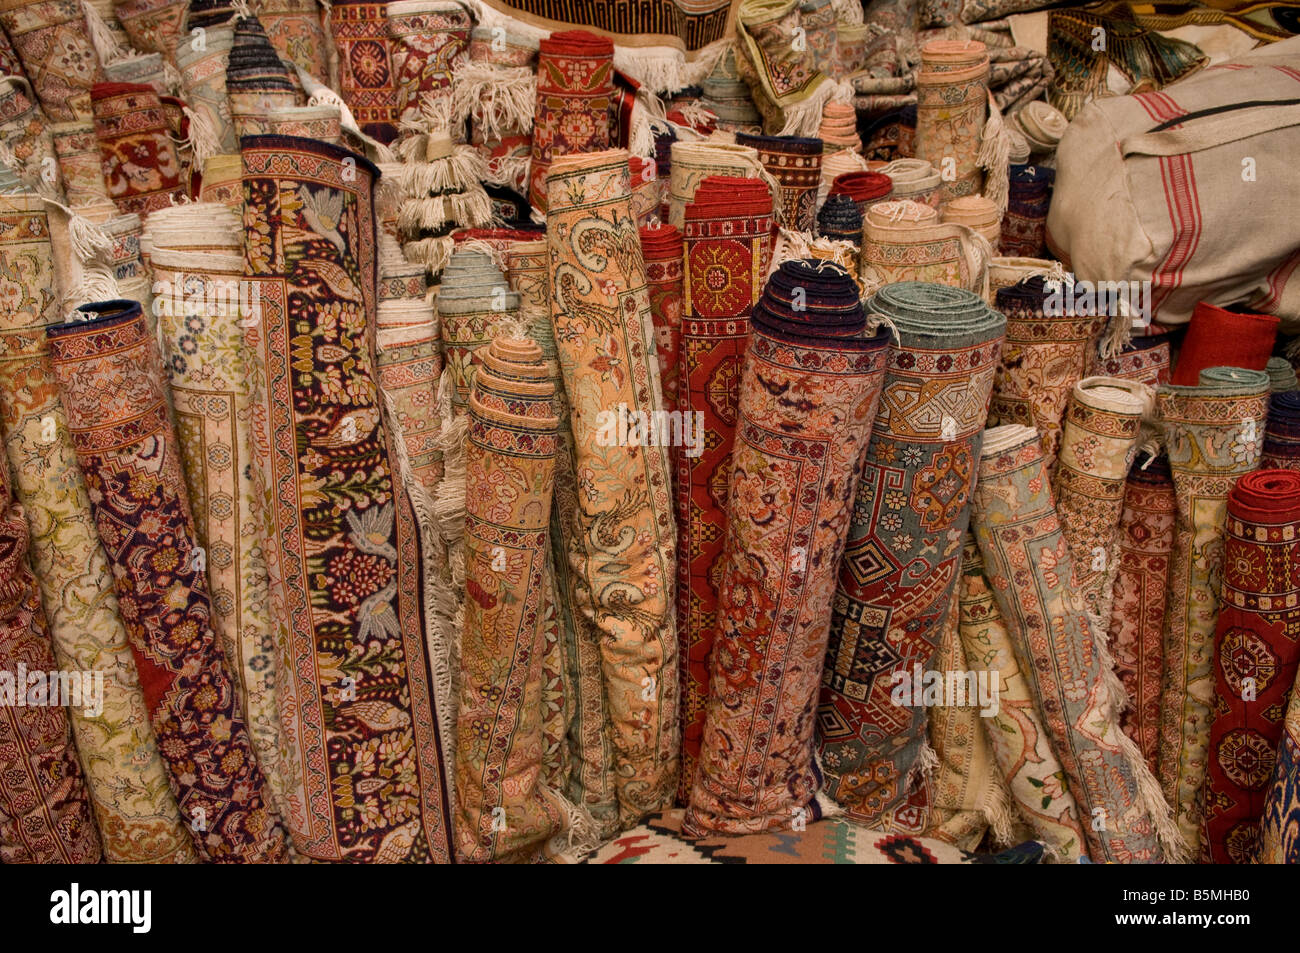 A Carpet Shop Stock Photos A Carpet Shop Stock Images